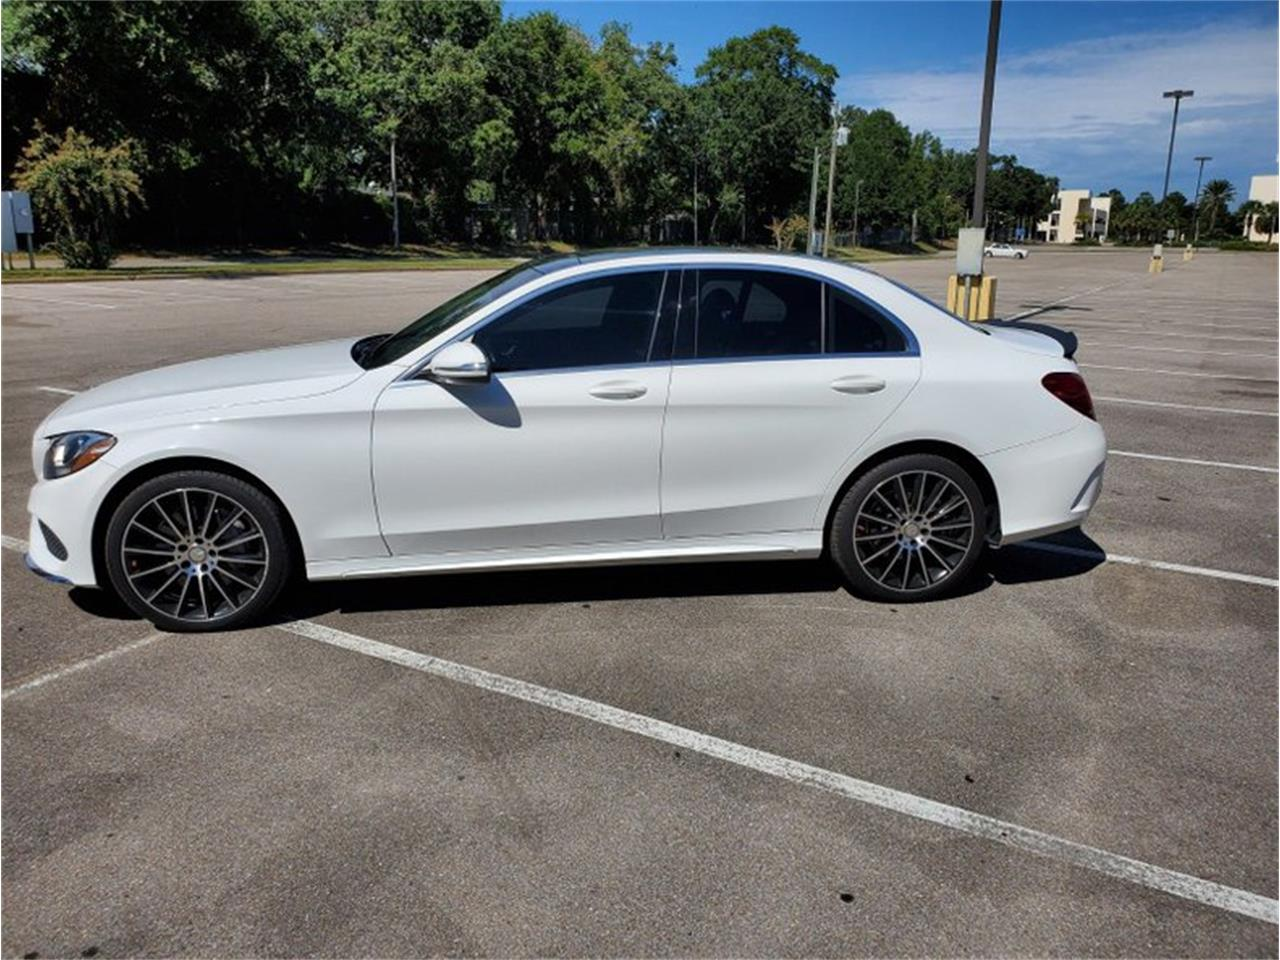 2015 Mercedes-Benz 300 (CC-1297291) for sale in Punta Gorda, Florida